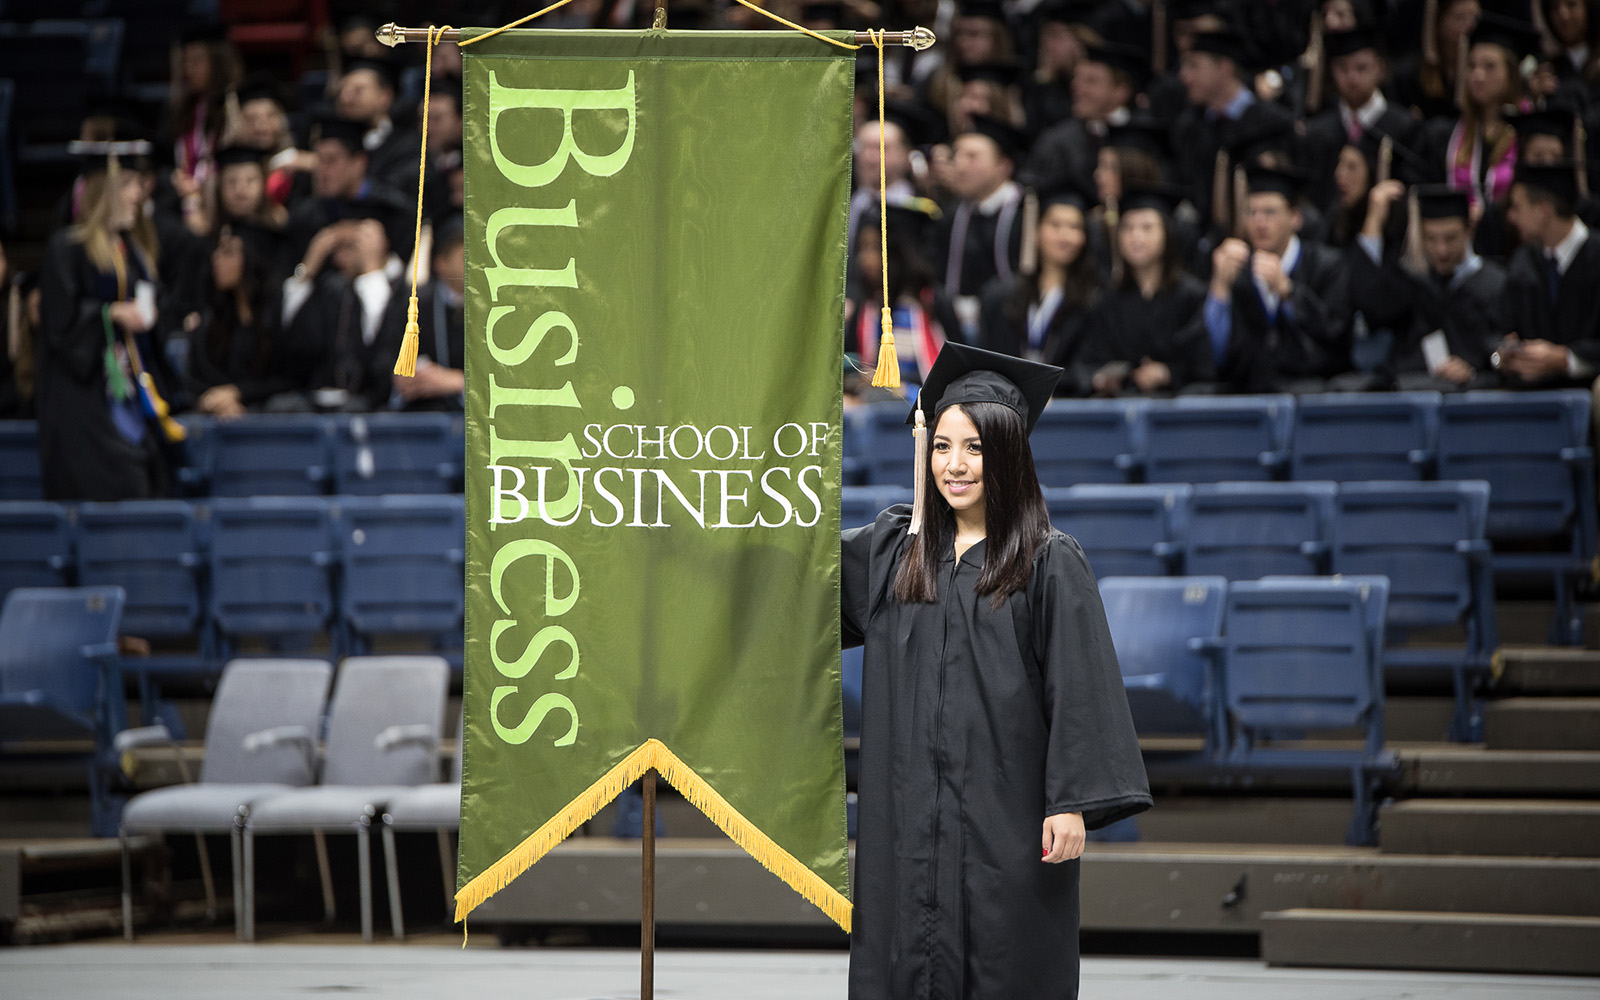 Andrea Jimenez at the 2016 UConn School of Business undergraduate commencement ceremony. (Nathan Oldham/UConn School of Business)